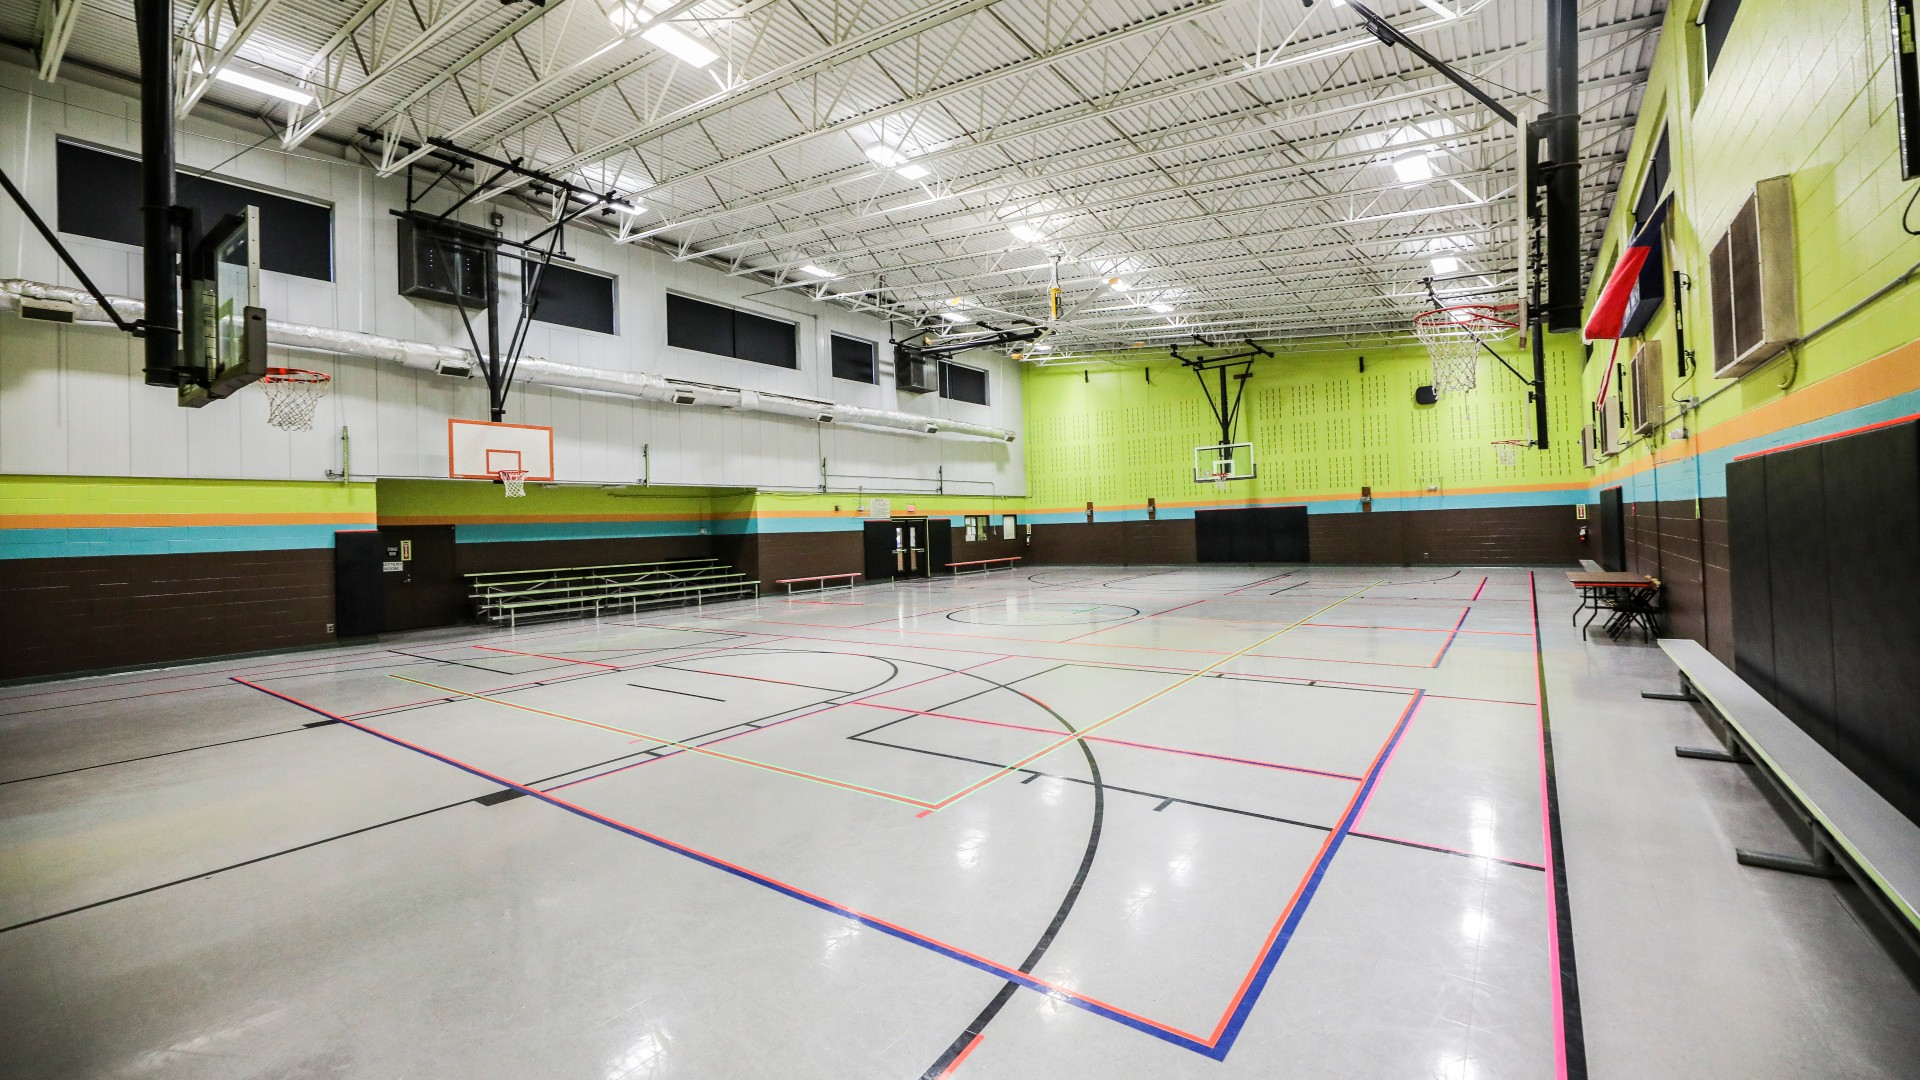 A large, brightly colored gymnasium with multiple courts